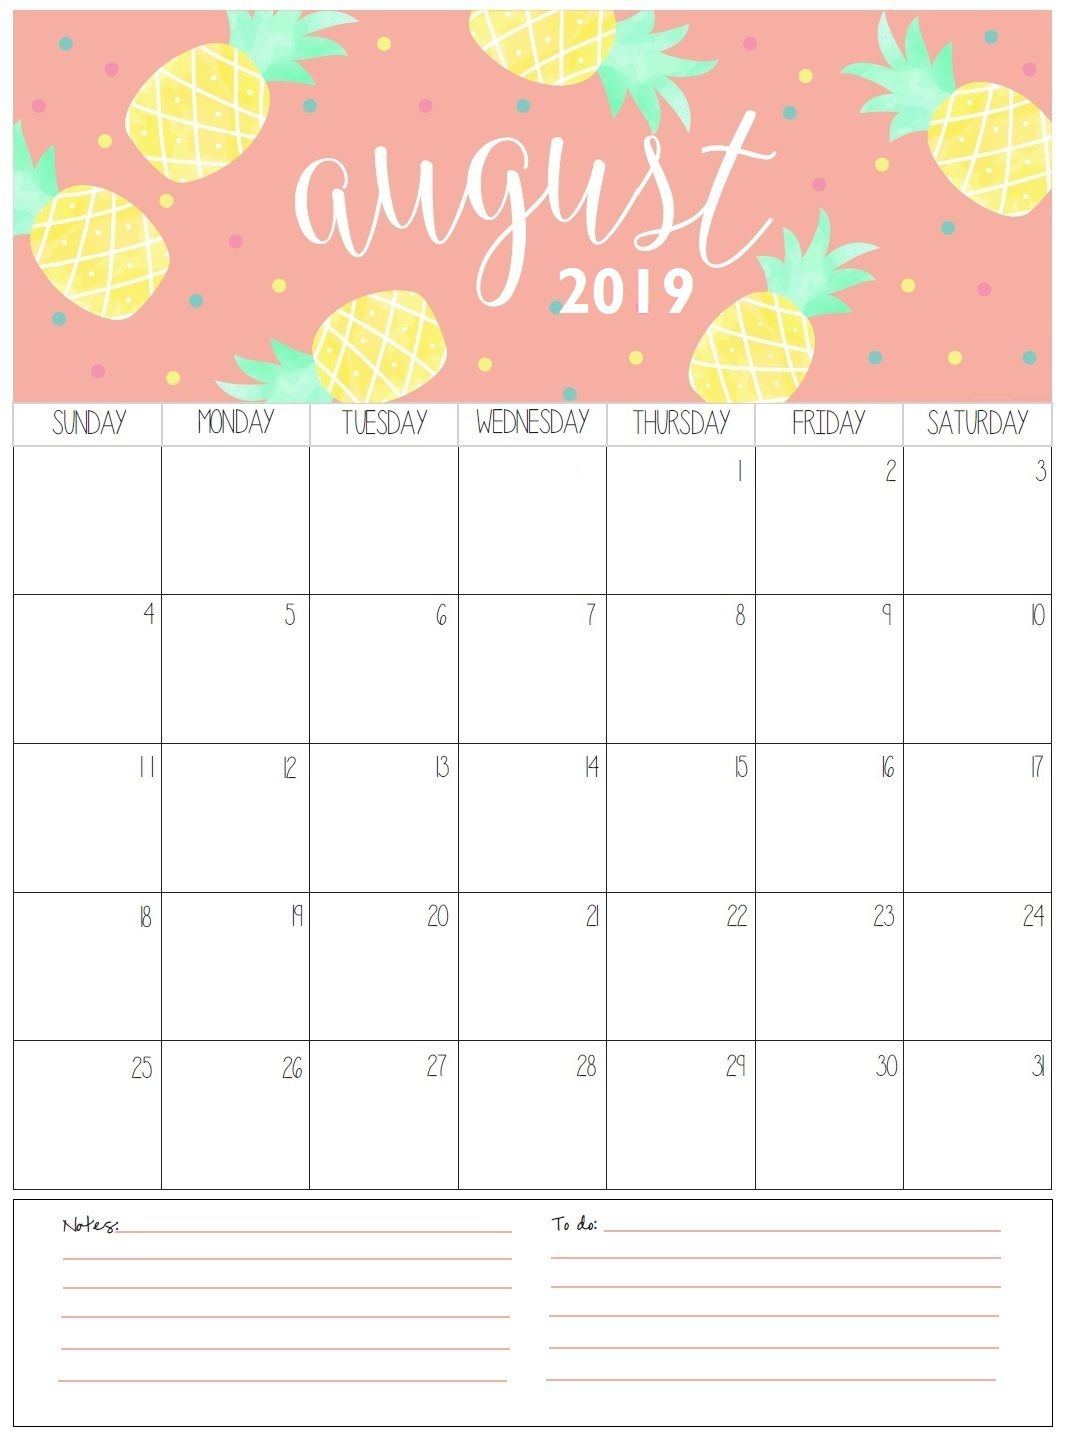 August Monthly Calendar 2019 Cute Calenders Calendar 2019